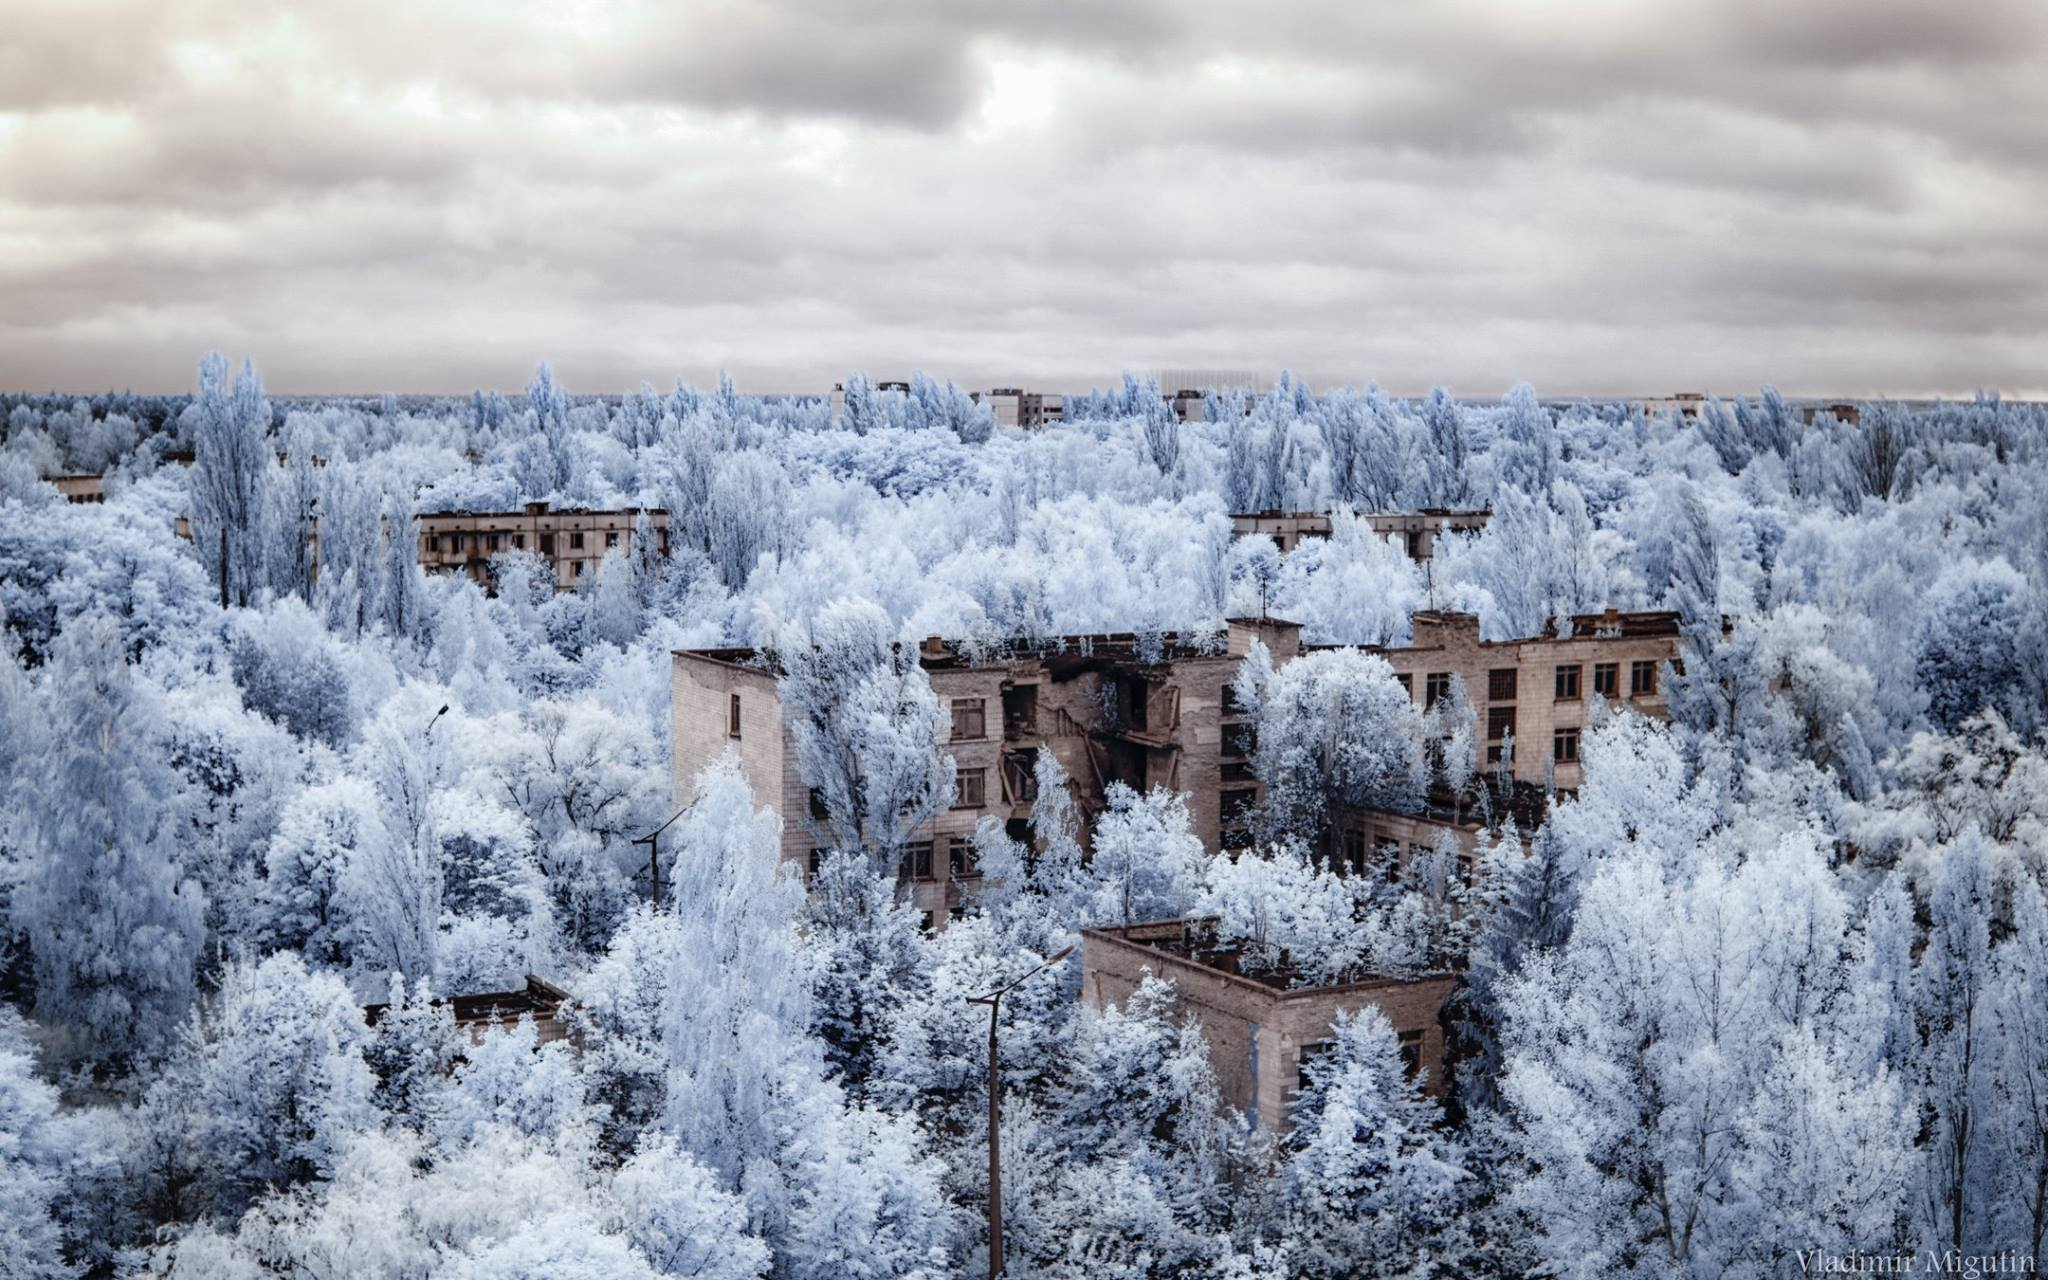 Chernobyl foliage captures in infrared